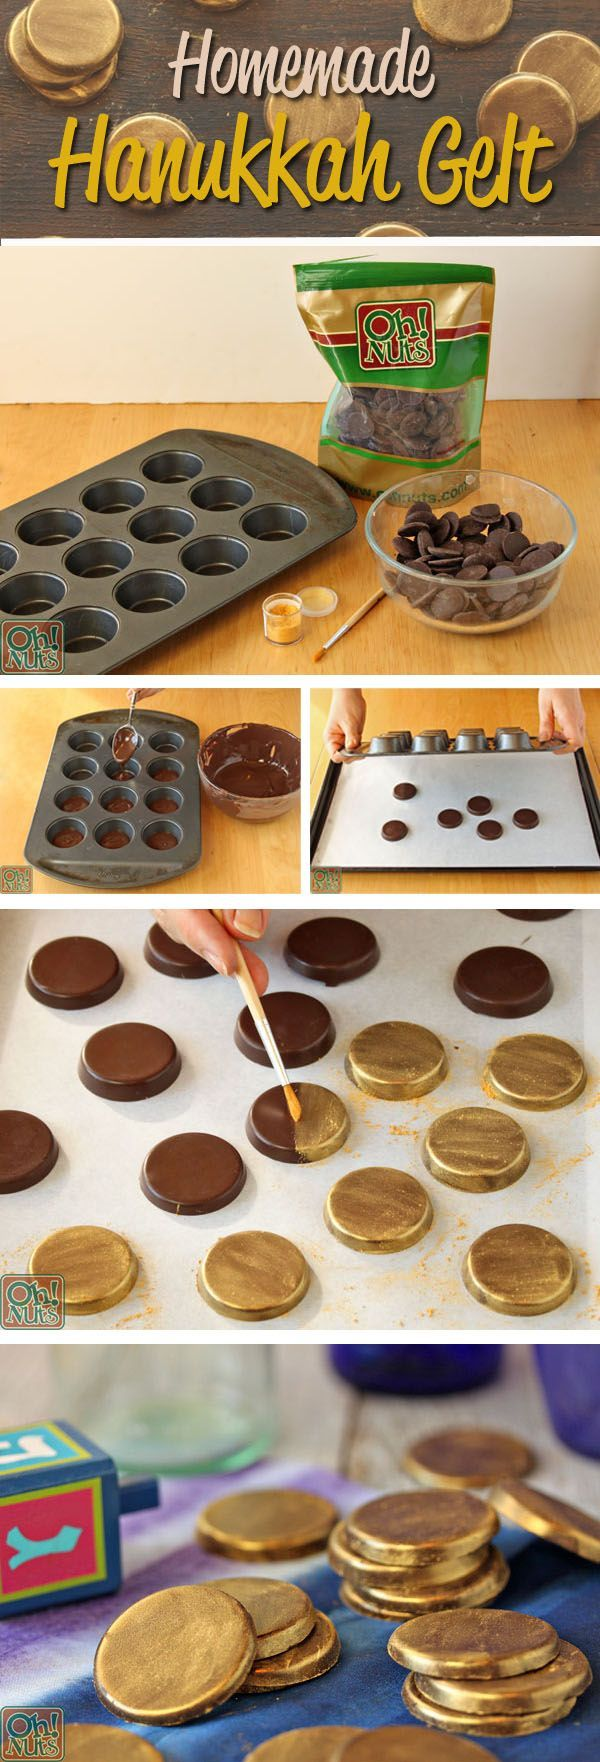 Homemade Hanukkah Gelt by Oh Nuts!  Hanukkah gelt is a Jewish tradition where children receive gelt (the Yiddish word for money) during the festival of lights!  This tradition has since been modernized, and now children typically receive gold coin chocolates as Hanukkah Gelt!